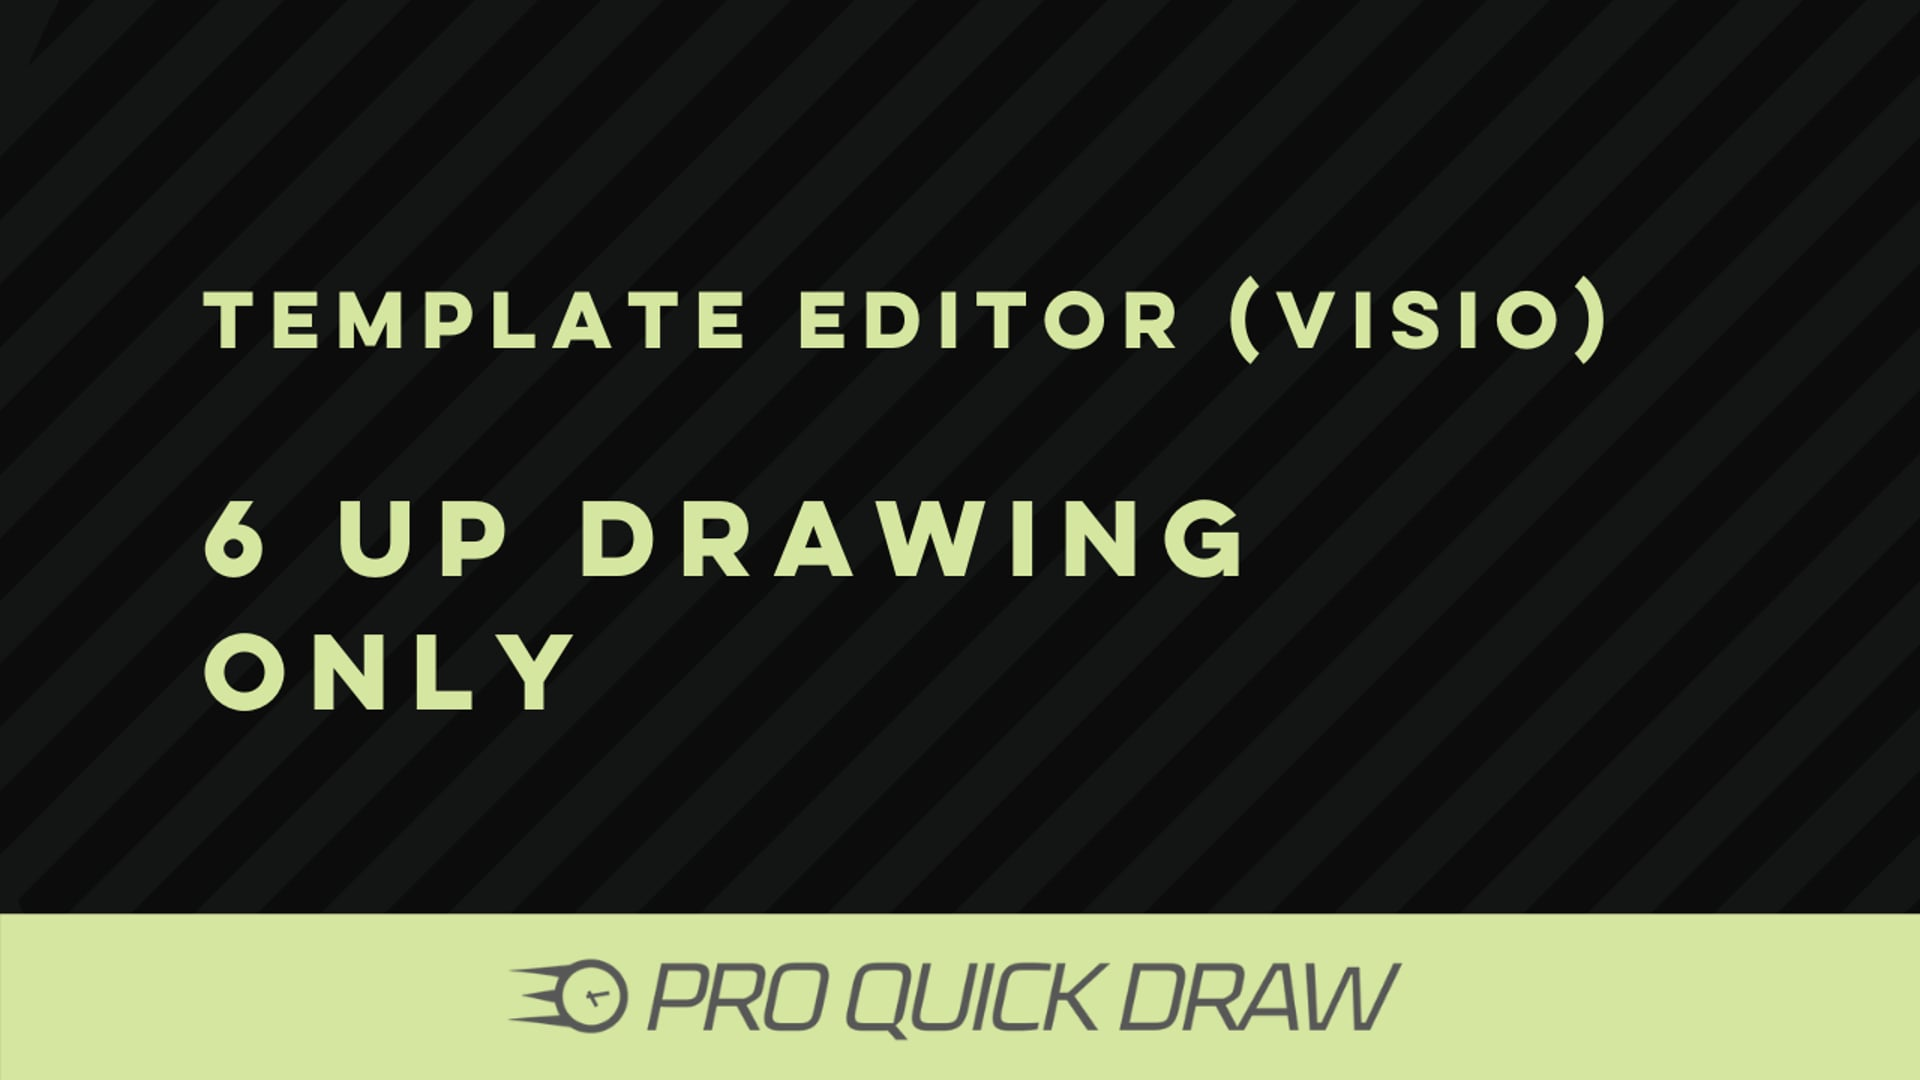 Template Editor (Visio): 6 up DTC